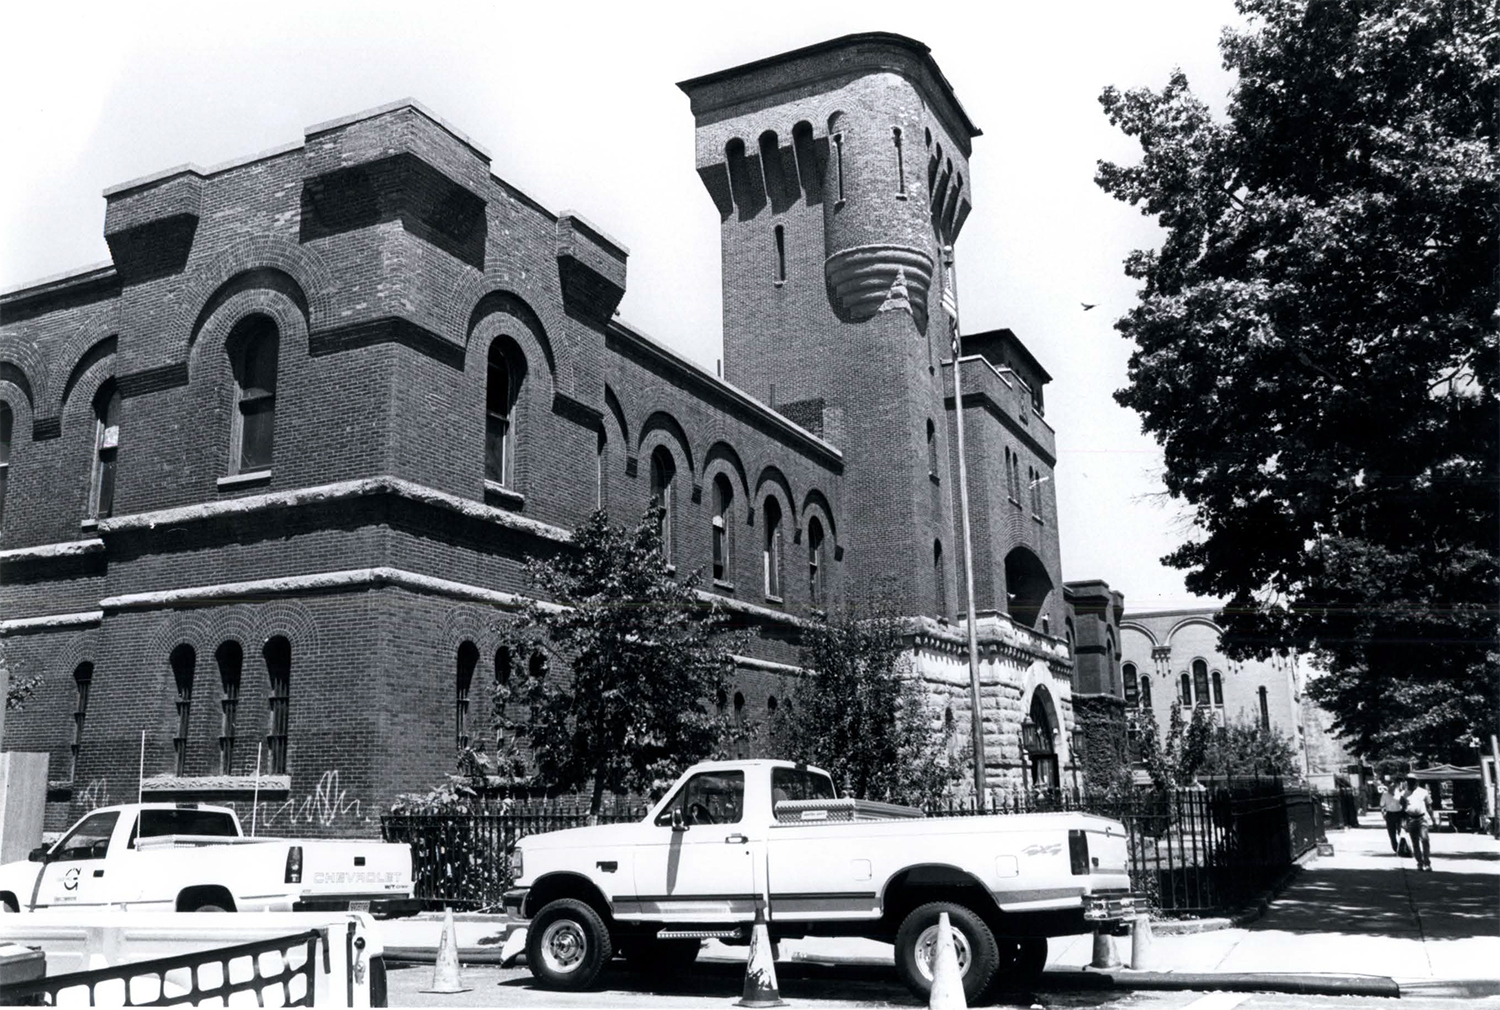 14th Regiment Armory, 1997. Photo via LPC.